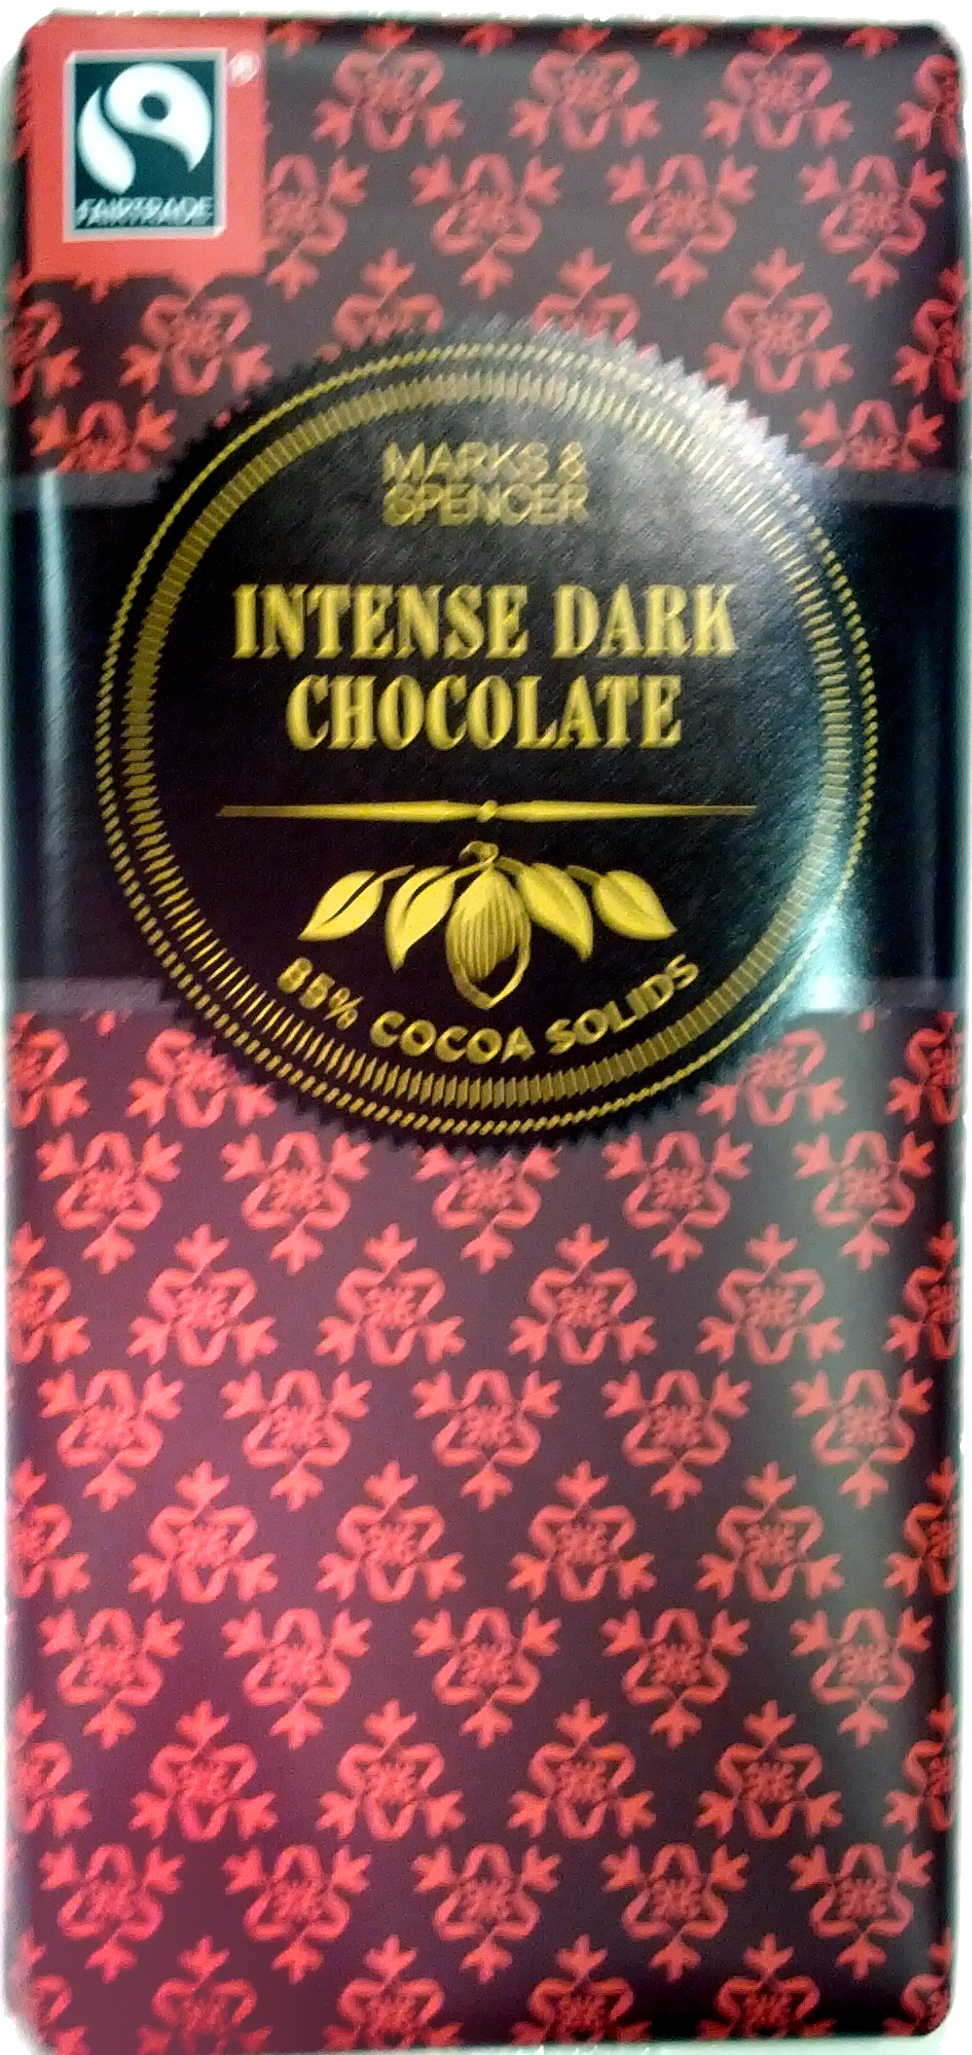 Intense Dark Chocolate 85% Cocoa Solids - Product